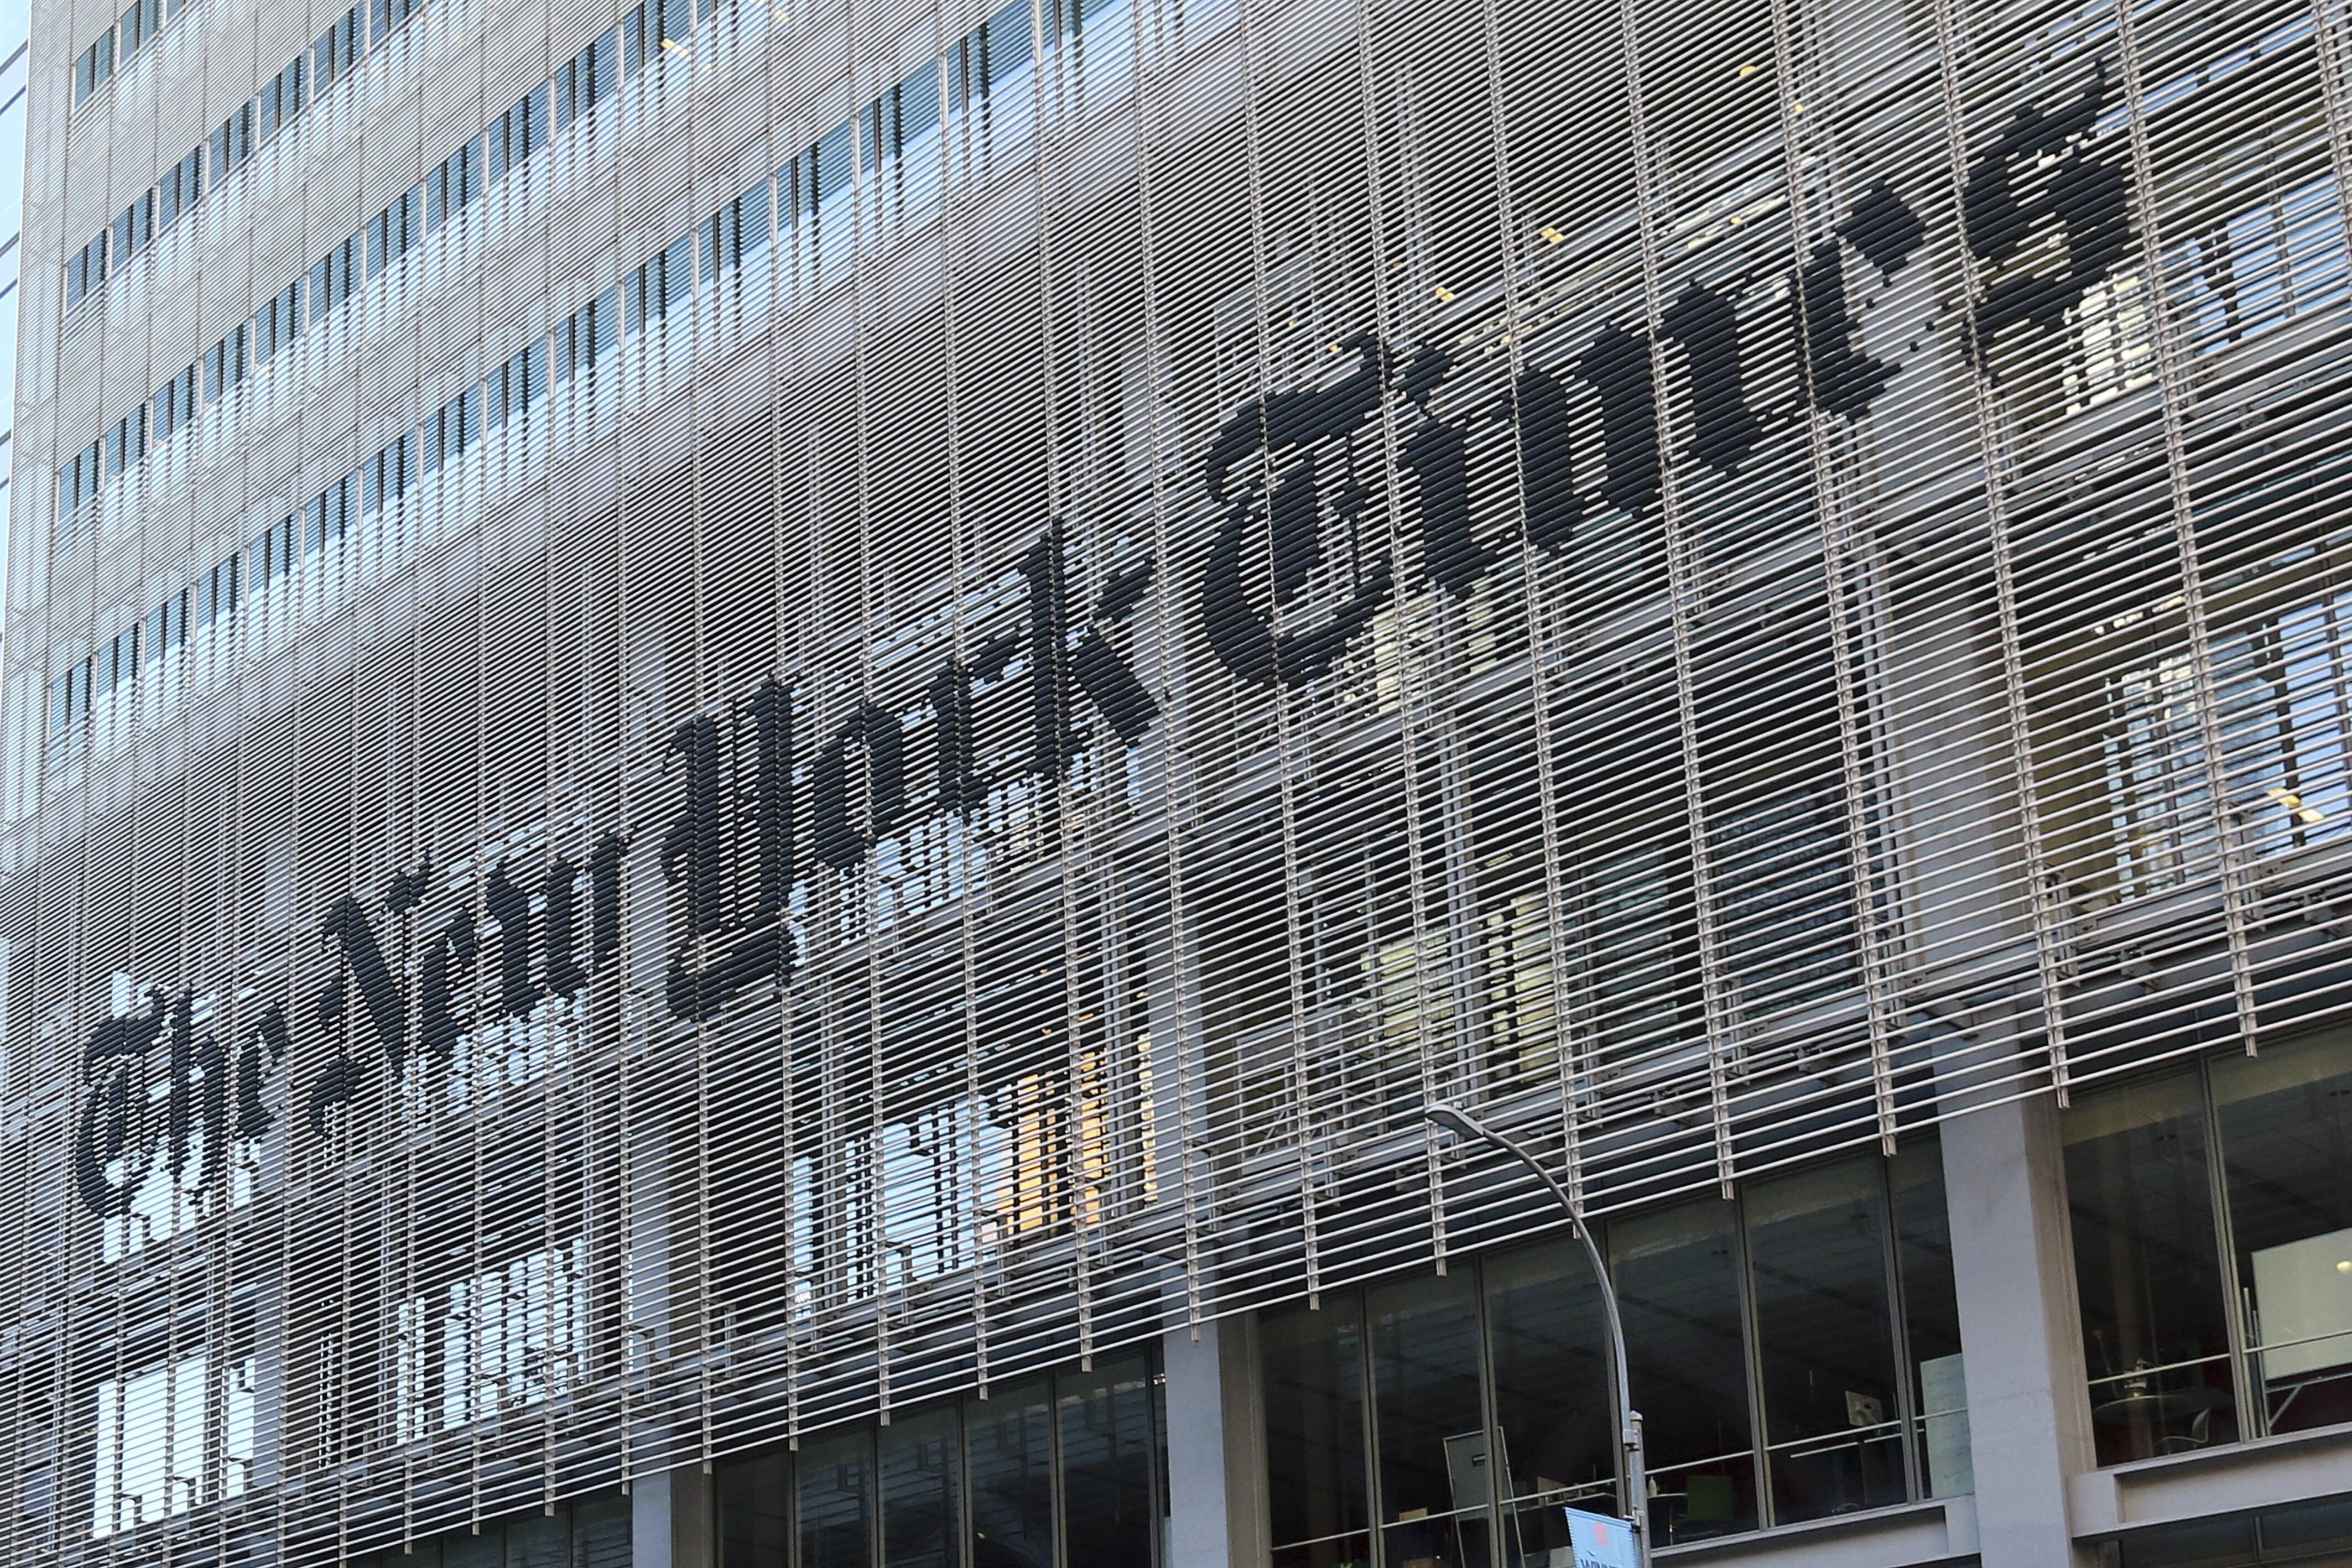 New York, USA October 2019: Impressions New York - October - 2019 The newspaper building of the New York Times, in New York, lettering, | usage worldwide Photo by: Fotostand / Freitag/picture-alliance/dpa/AP Images